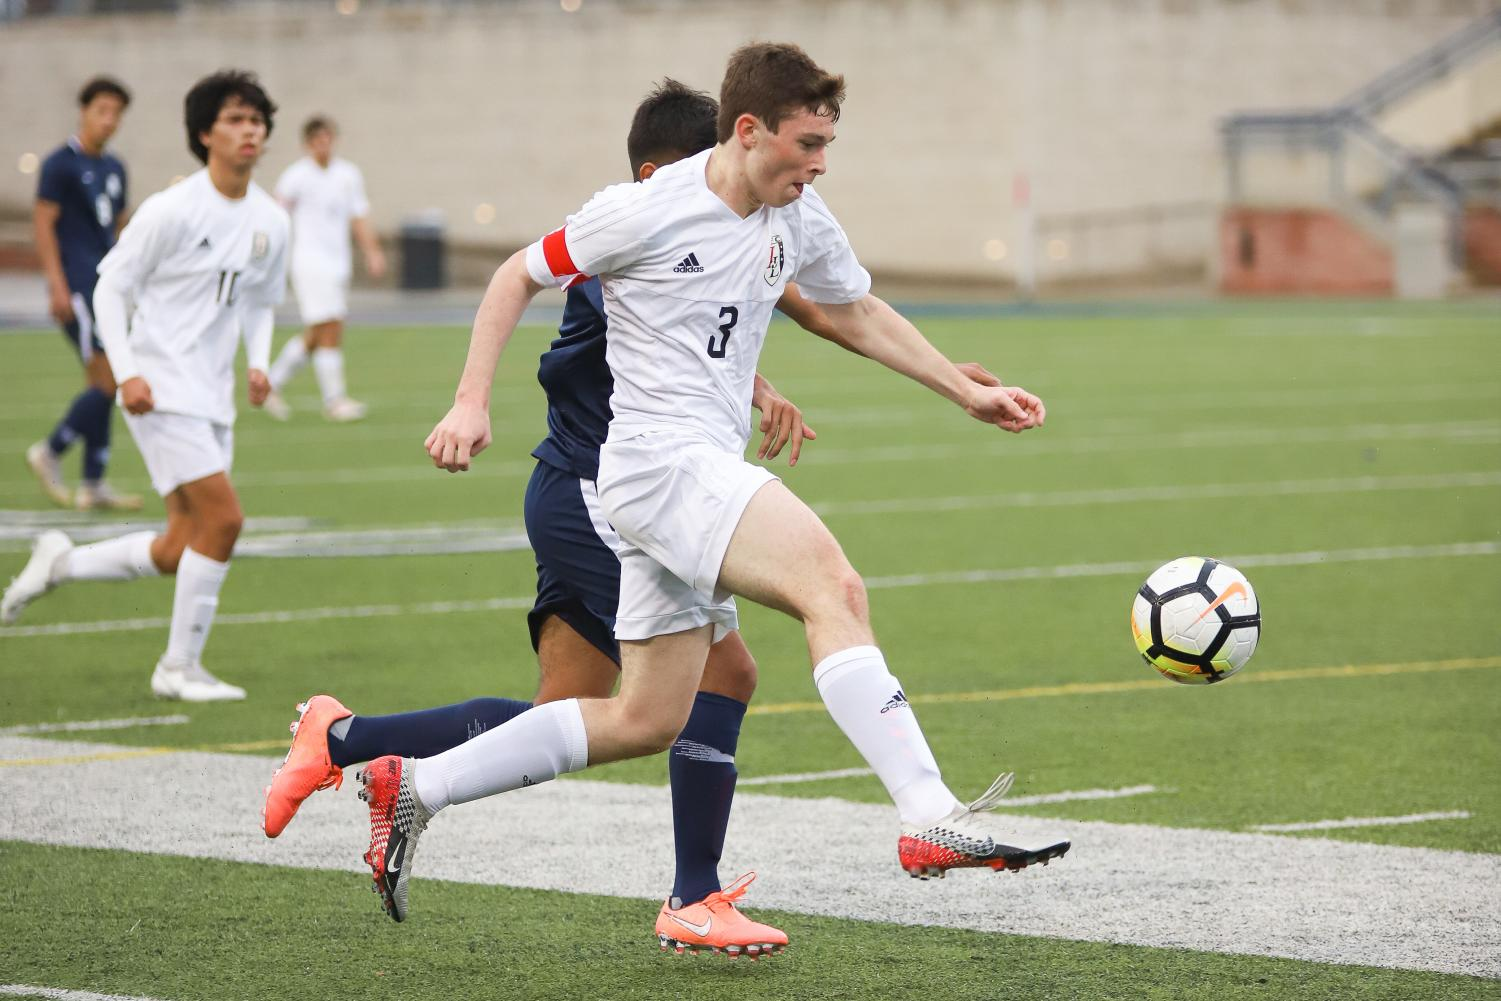 Junior Michael Myers takes possession of the ball during the first half of the game against Allen.